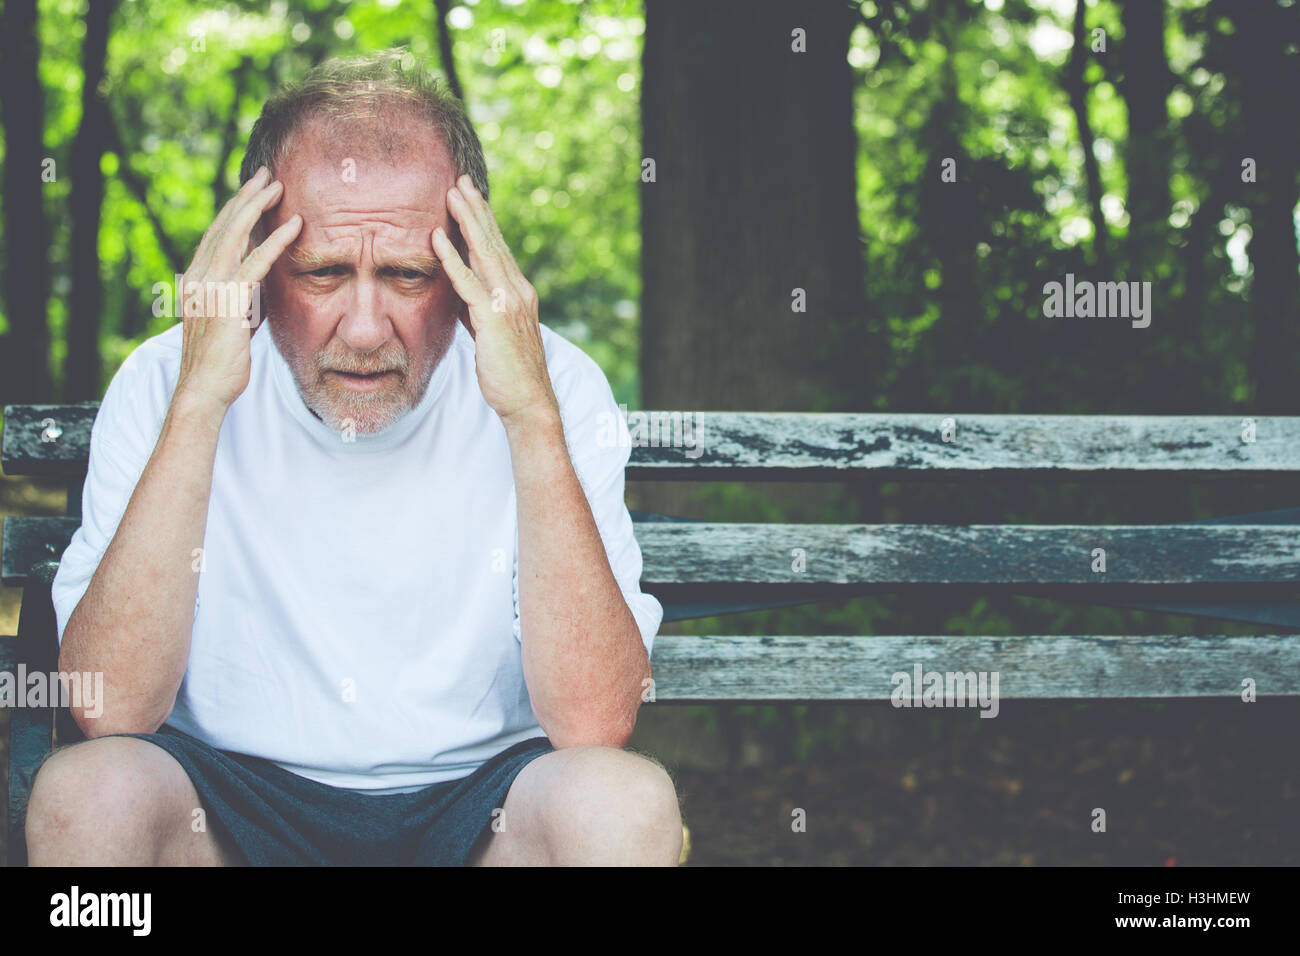 Closeup portrait, stressed older man in white shirt, hands on head with bad headache, sitting on bench - Stock Image